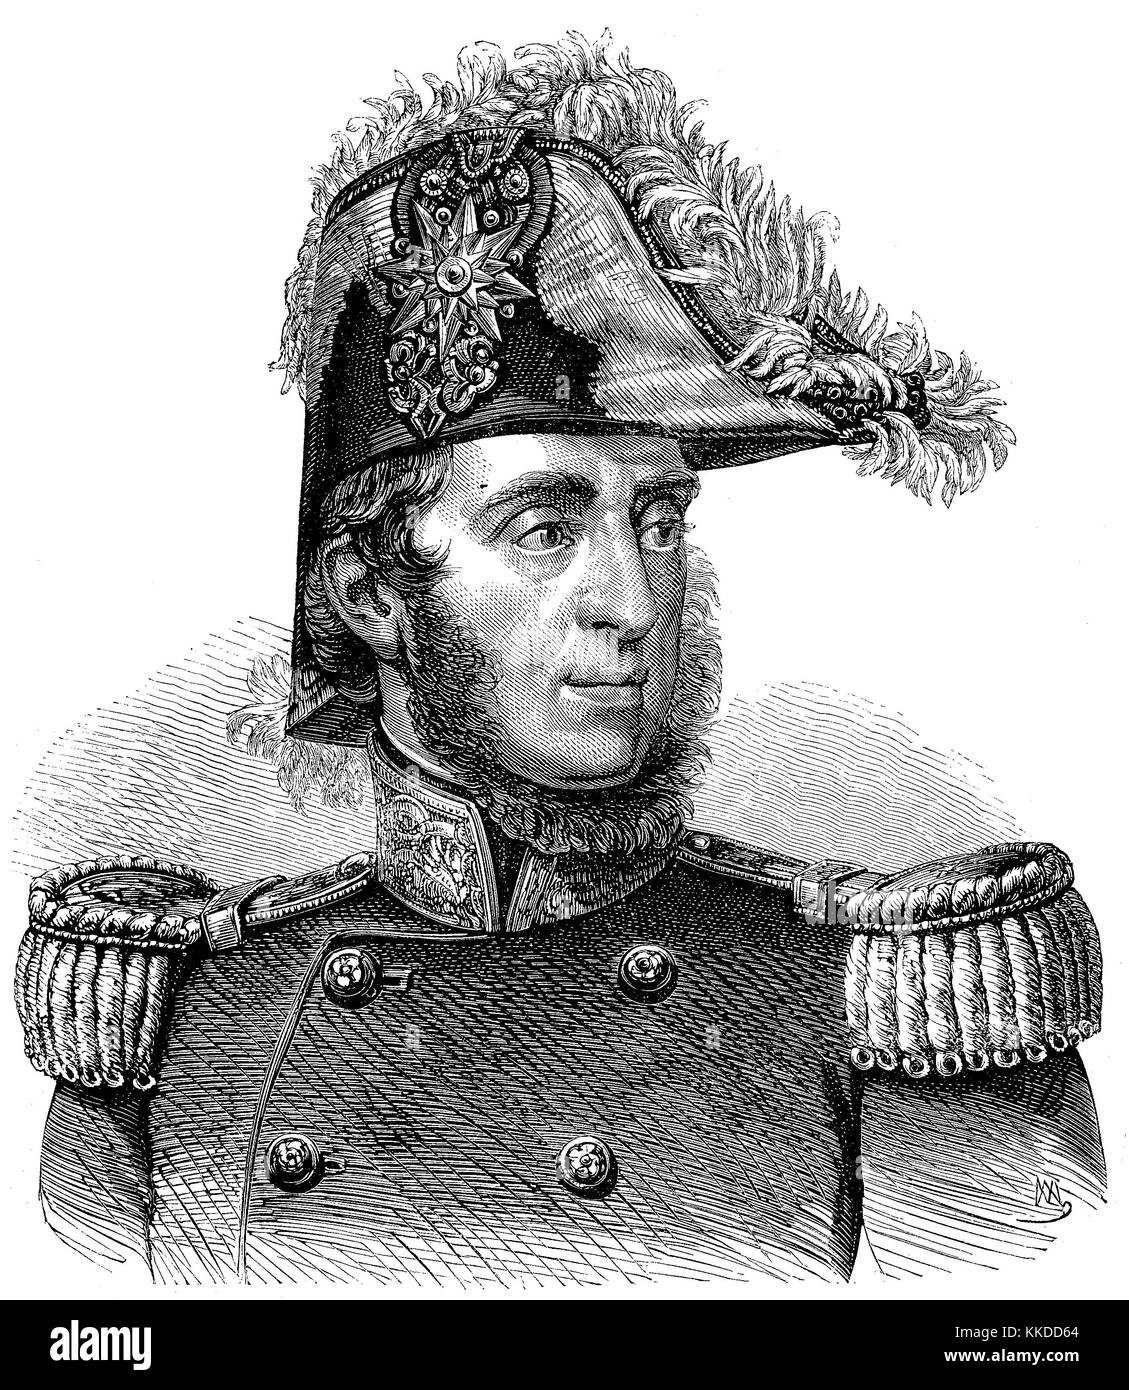 Guglielmo Pepe, 13 February 1783 - 8 August 1855, was an Italian general and patriot, pictures of the time of 1855, Stock Photo